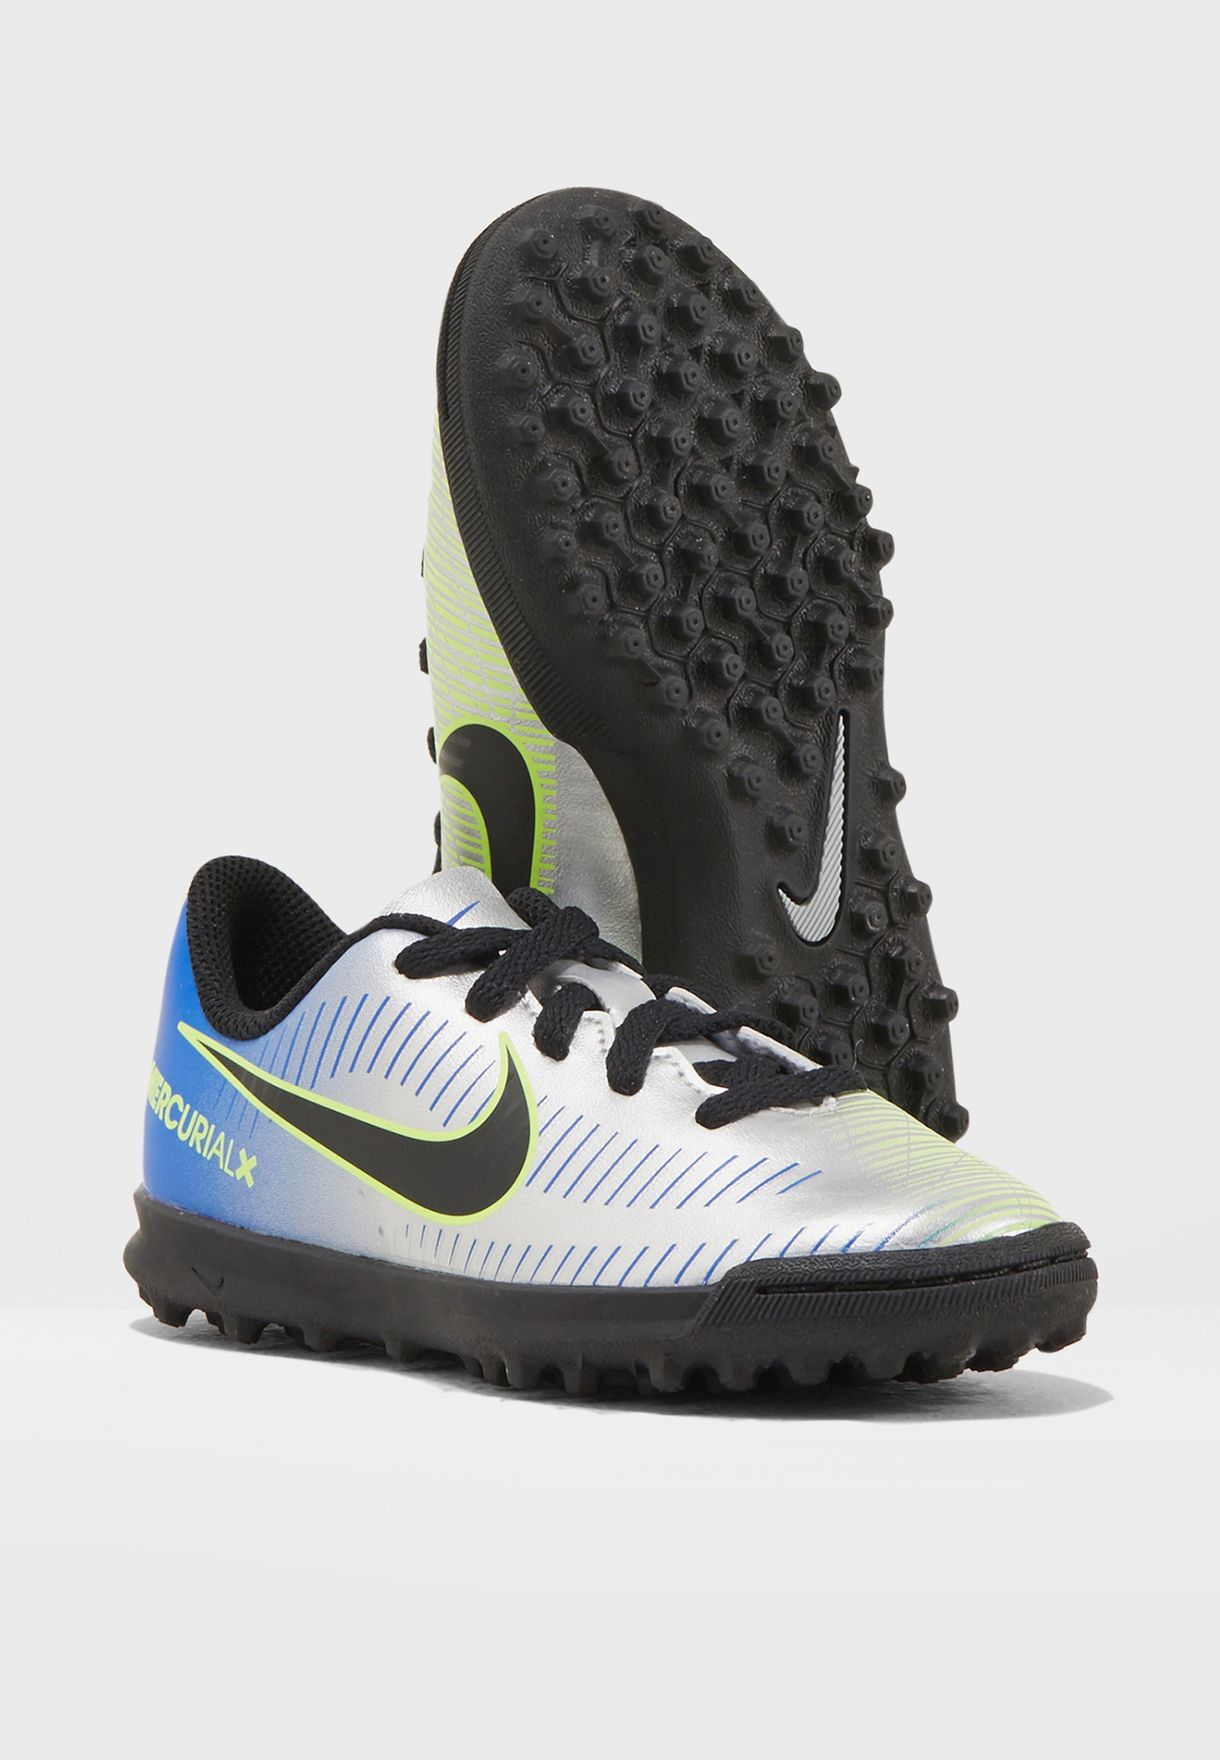 eca74a302 Shop Nike multicolor Mercurialx VRTX III NJR TF Kids 921497-407 for ...